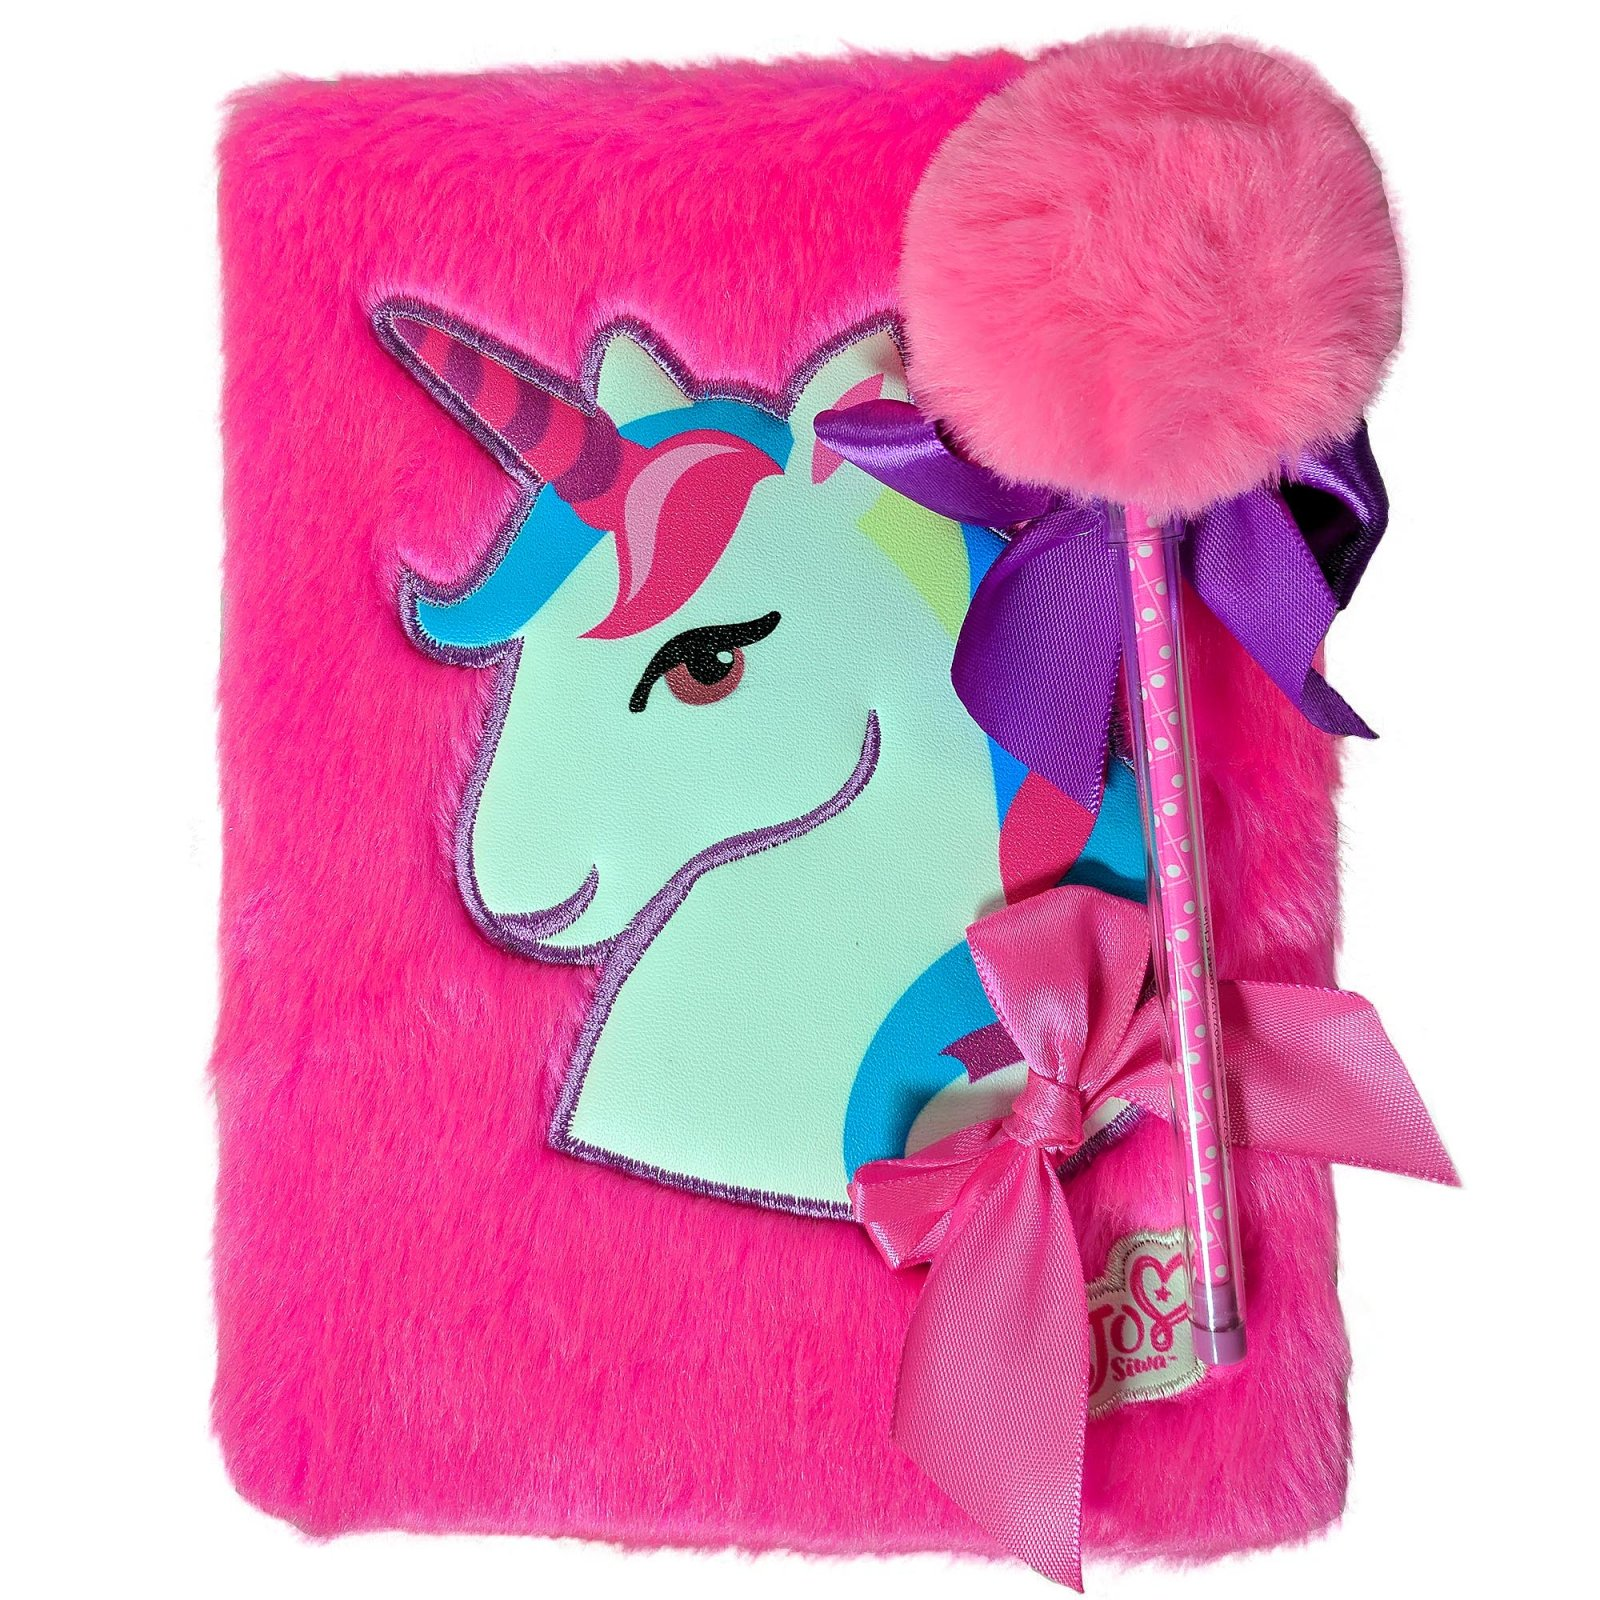 JoJo Siwa Girls Fuzzy Unicorn Journal Diary Notebook with Pom Pom Bow Pen Pink